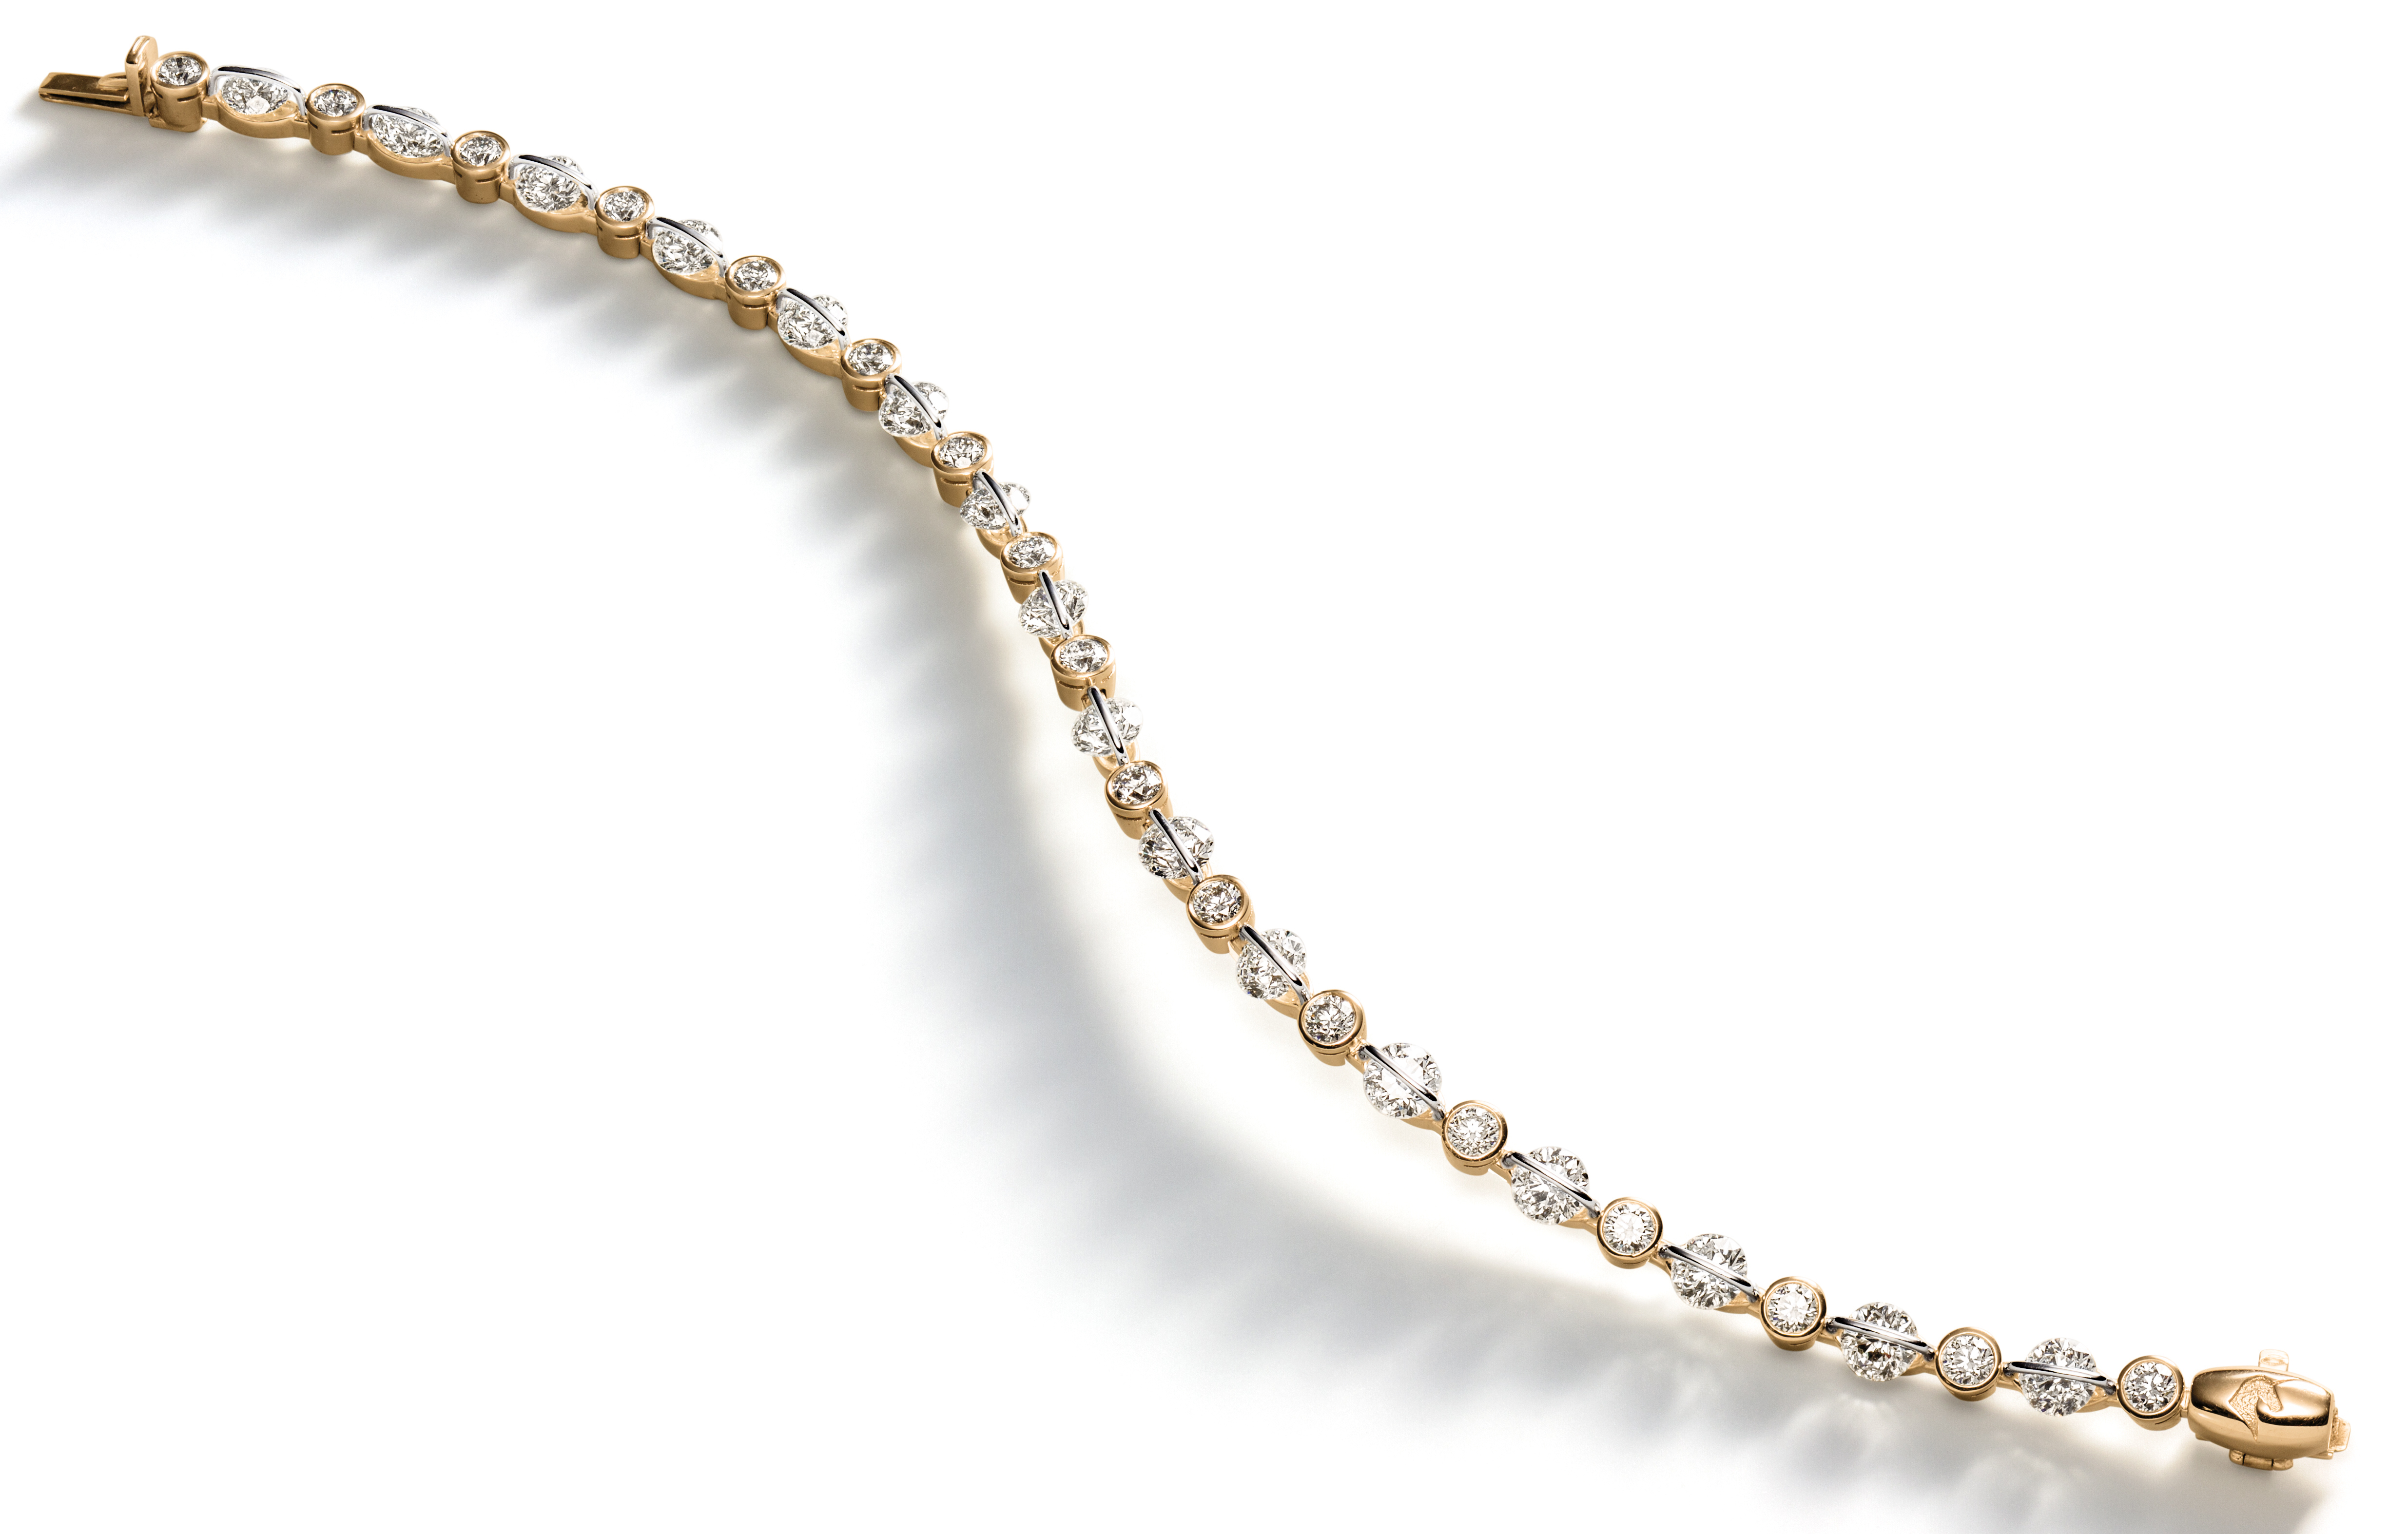 Schaffrath Liberte diamond bracelet | JCK On YOur Market